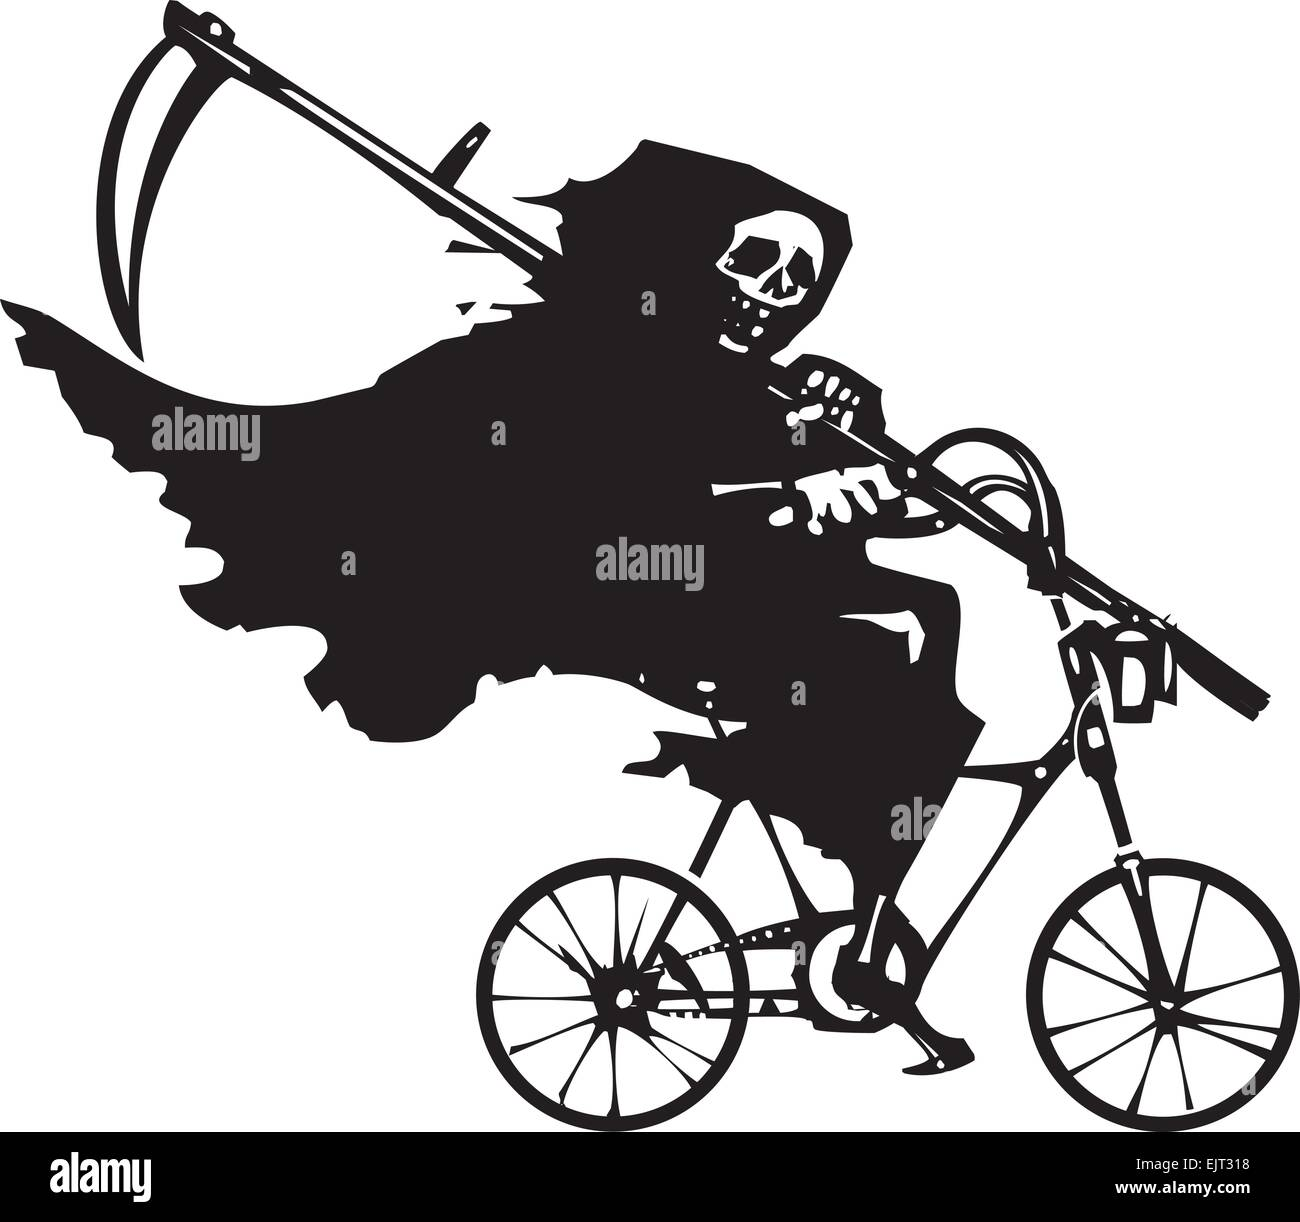 hight resolution of woodcut styled image of death as the grim reaper riding a bicycle stock vector